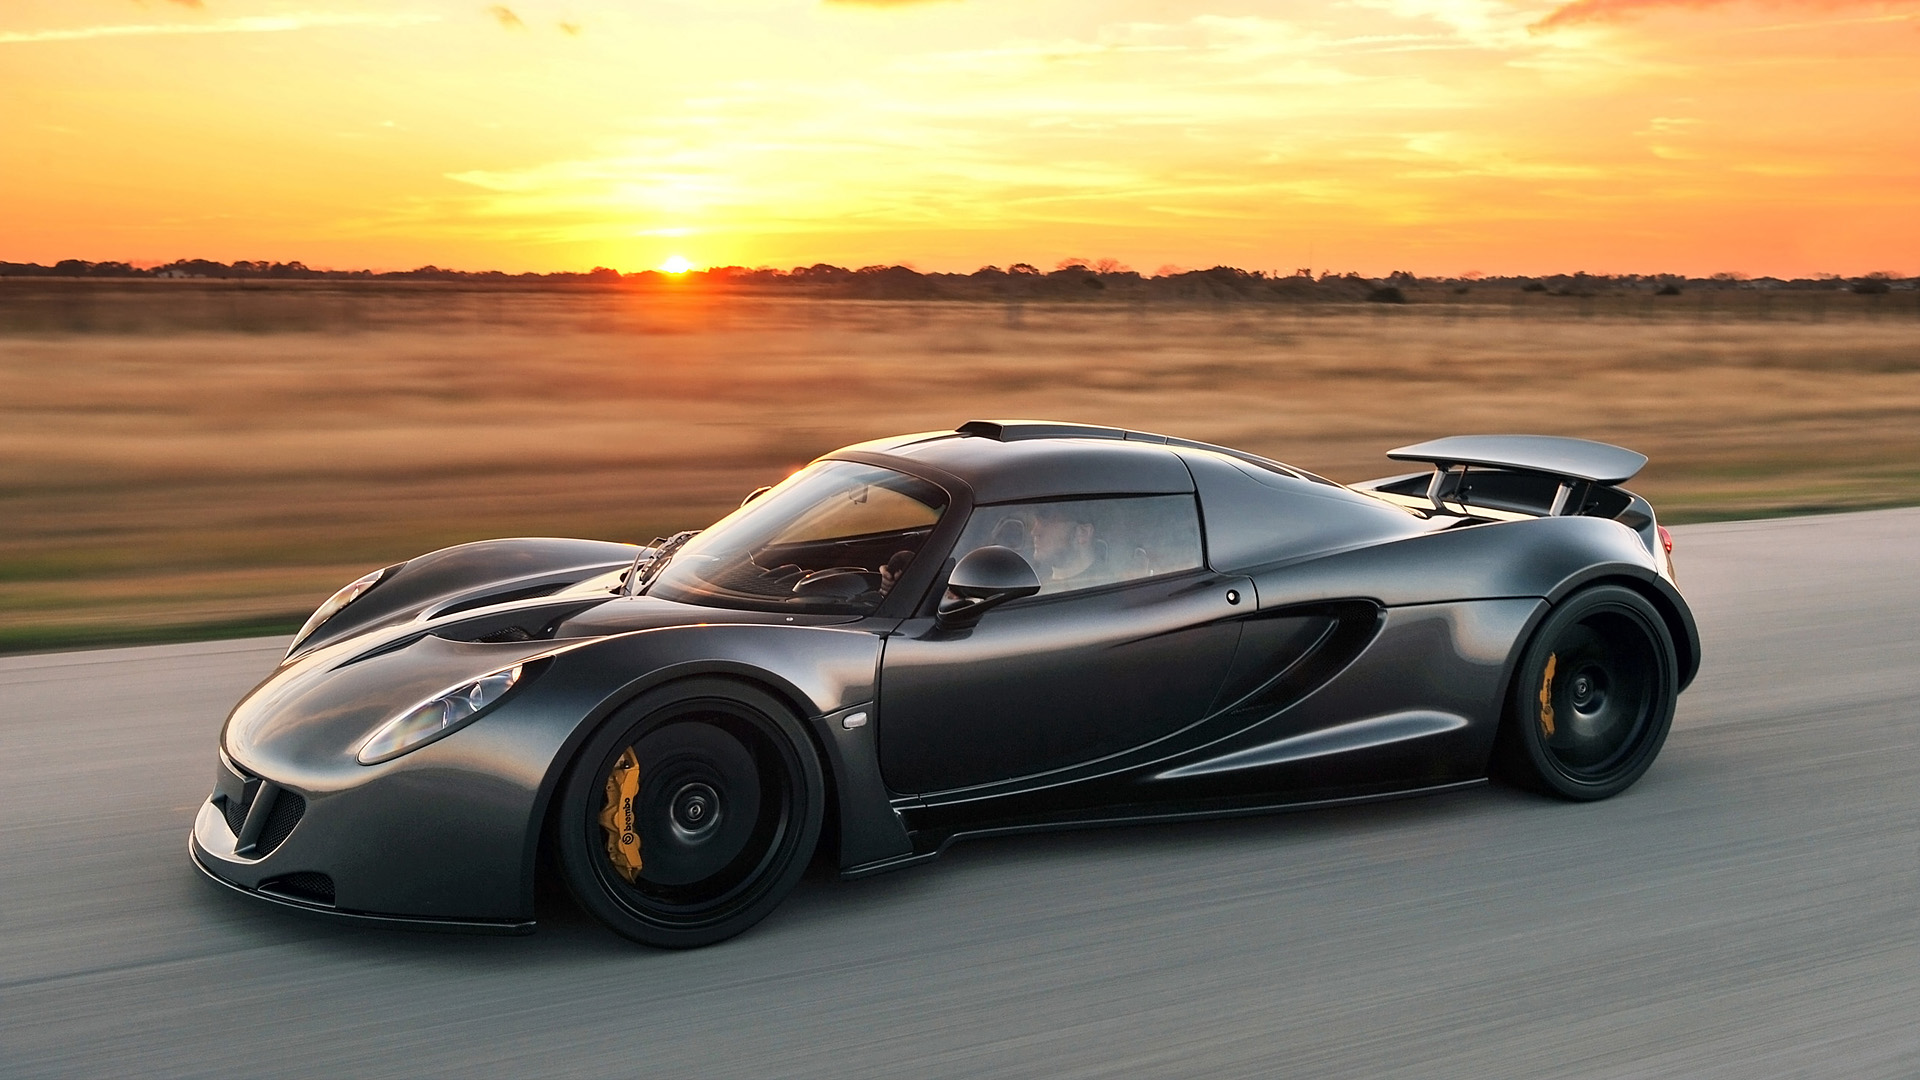 Hennessey Venom Gt Wallpaper Wallpapersafari